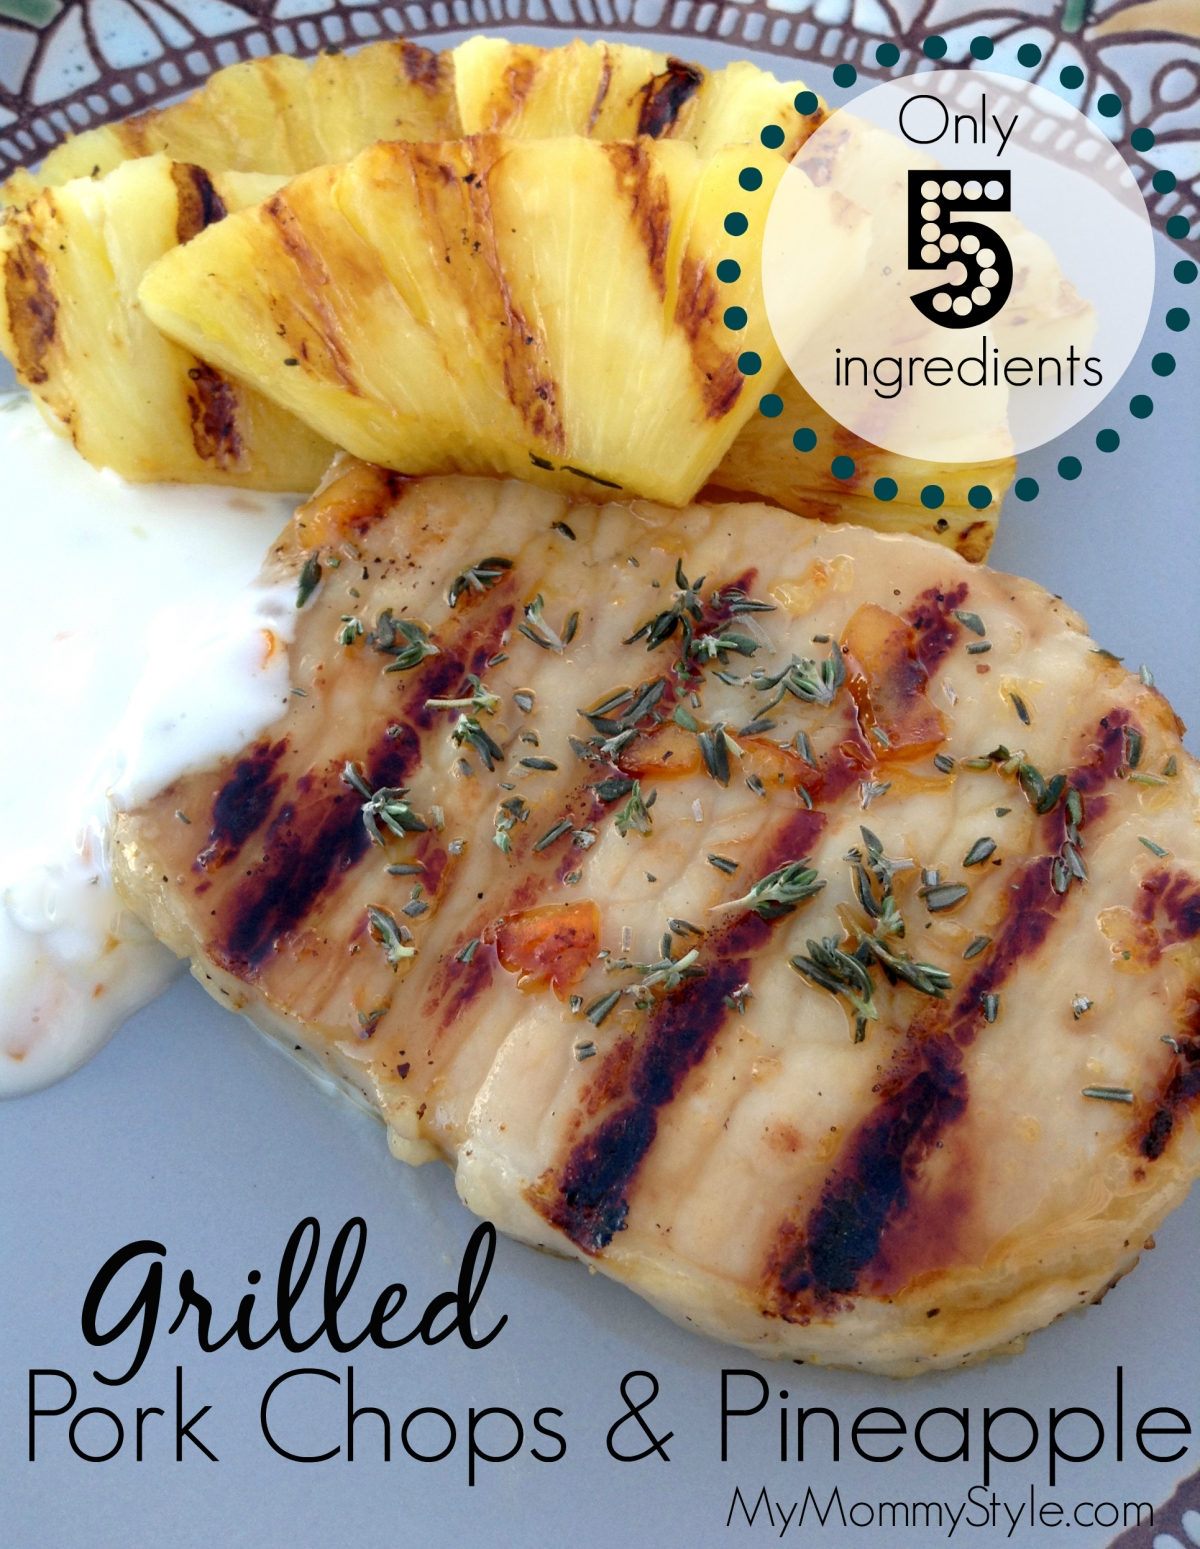 Grilled pork chops and pineapple